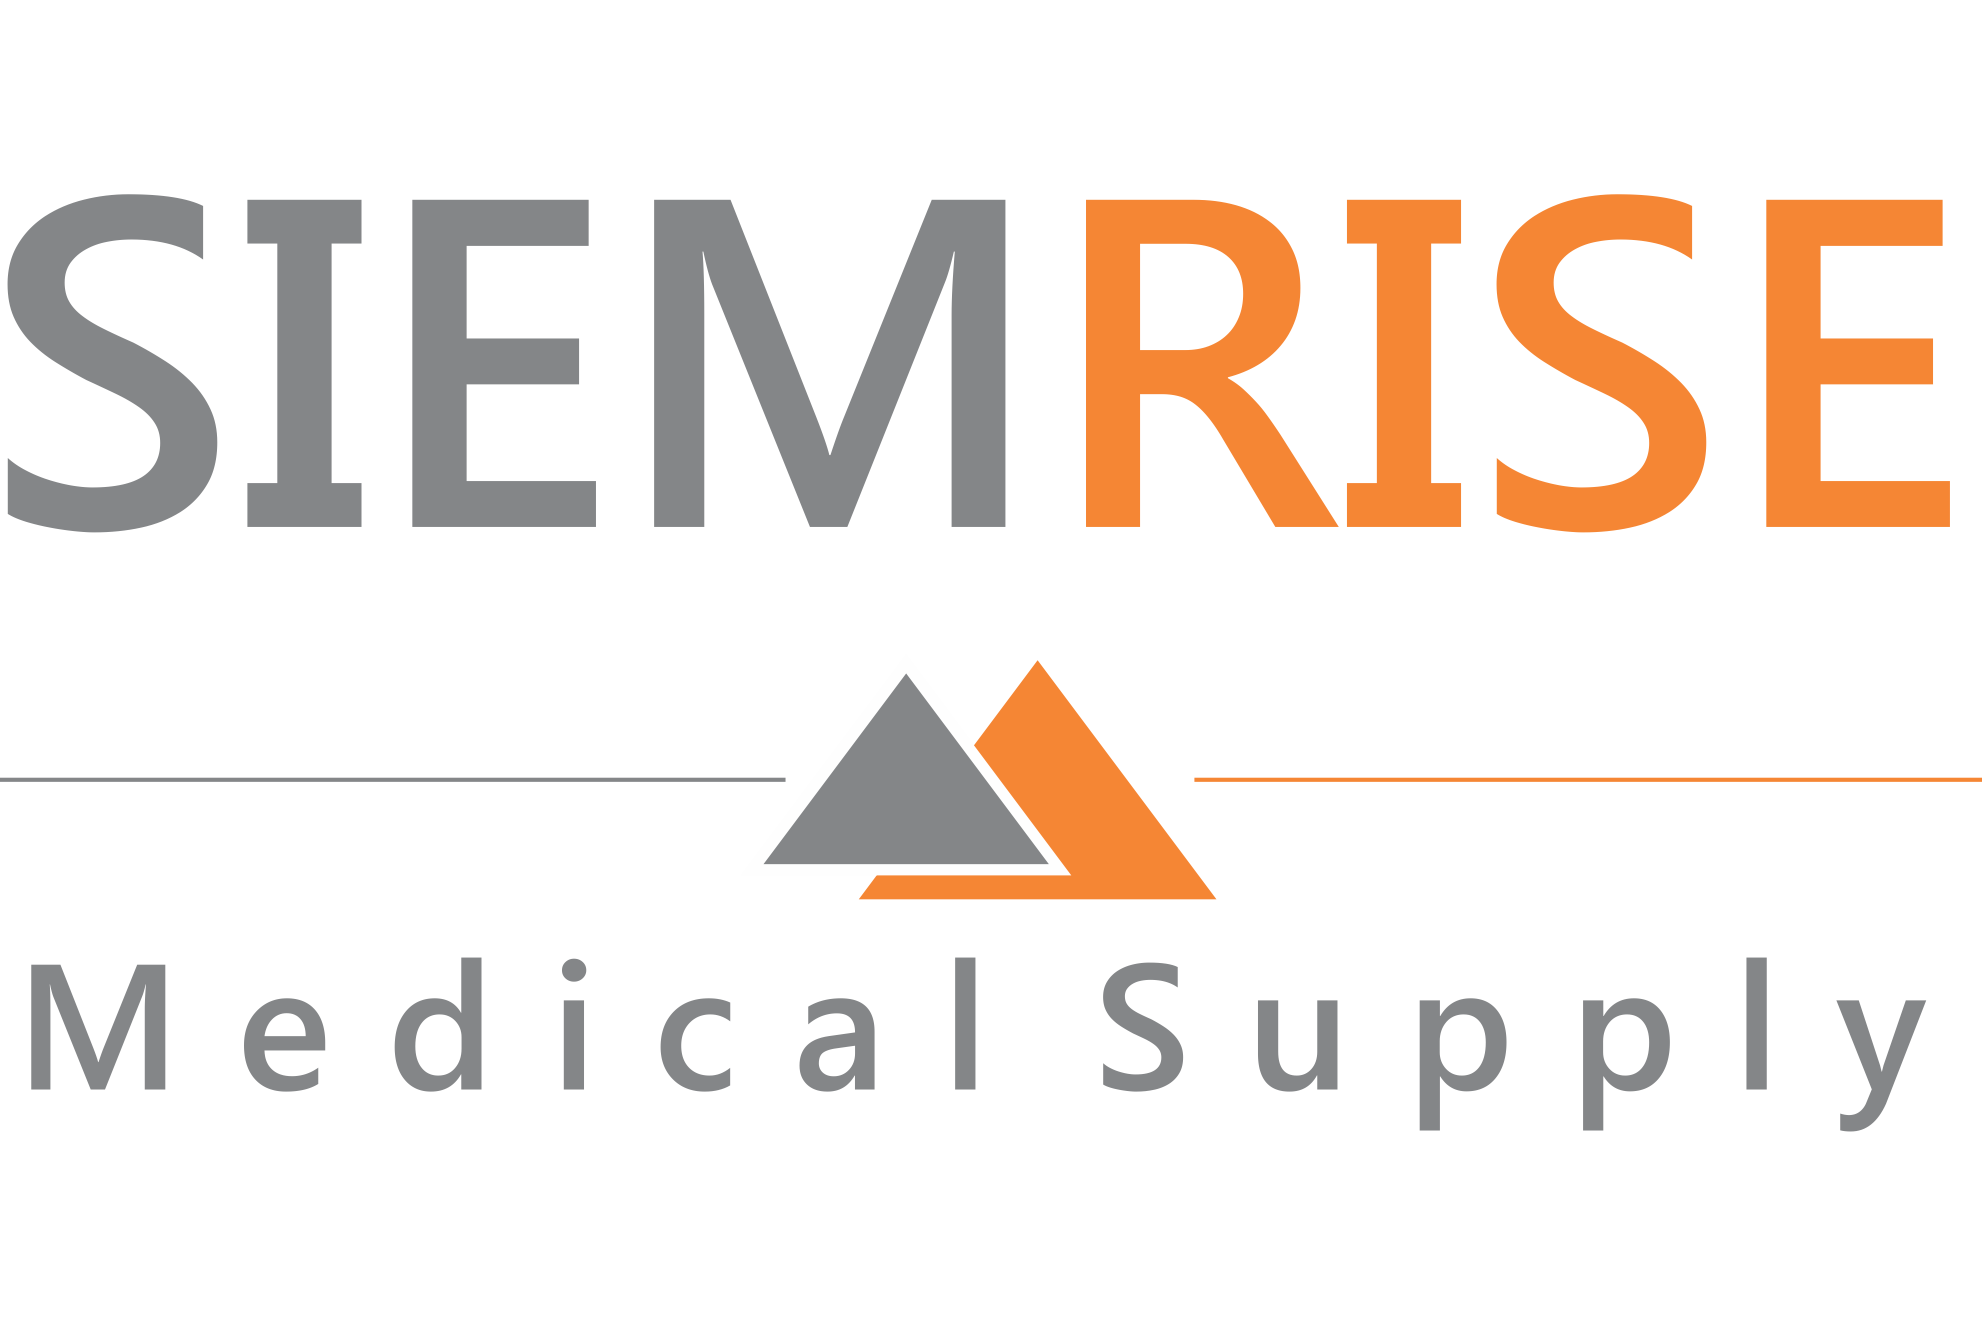 SIEMRISE MEDICAL SUPPLY